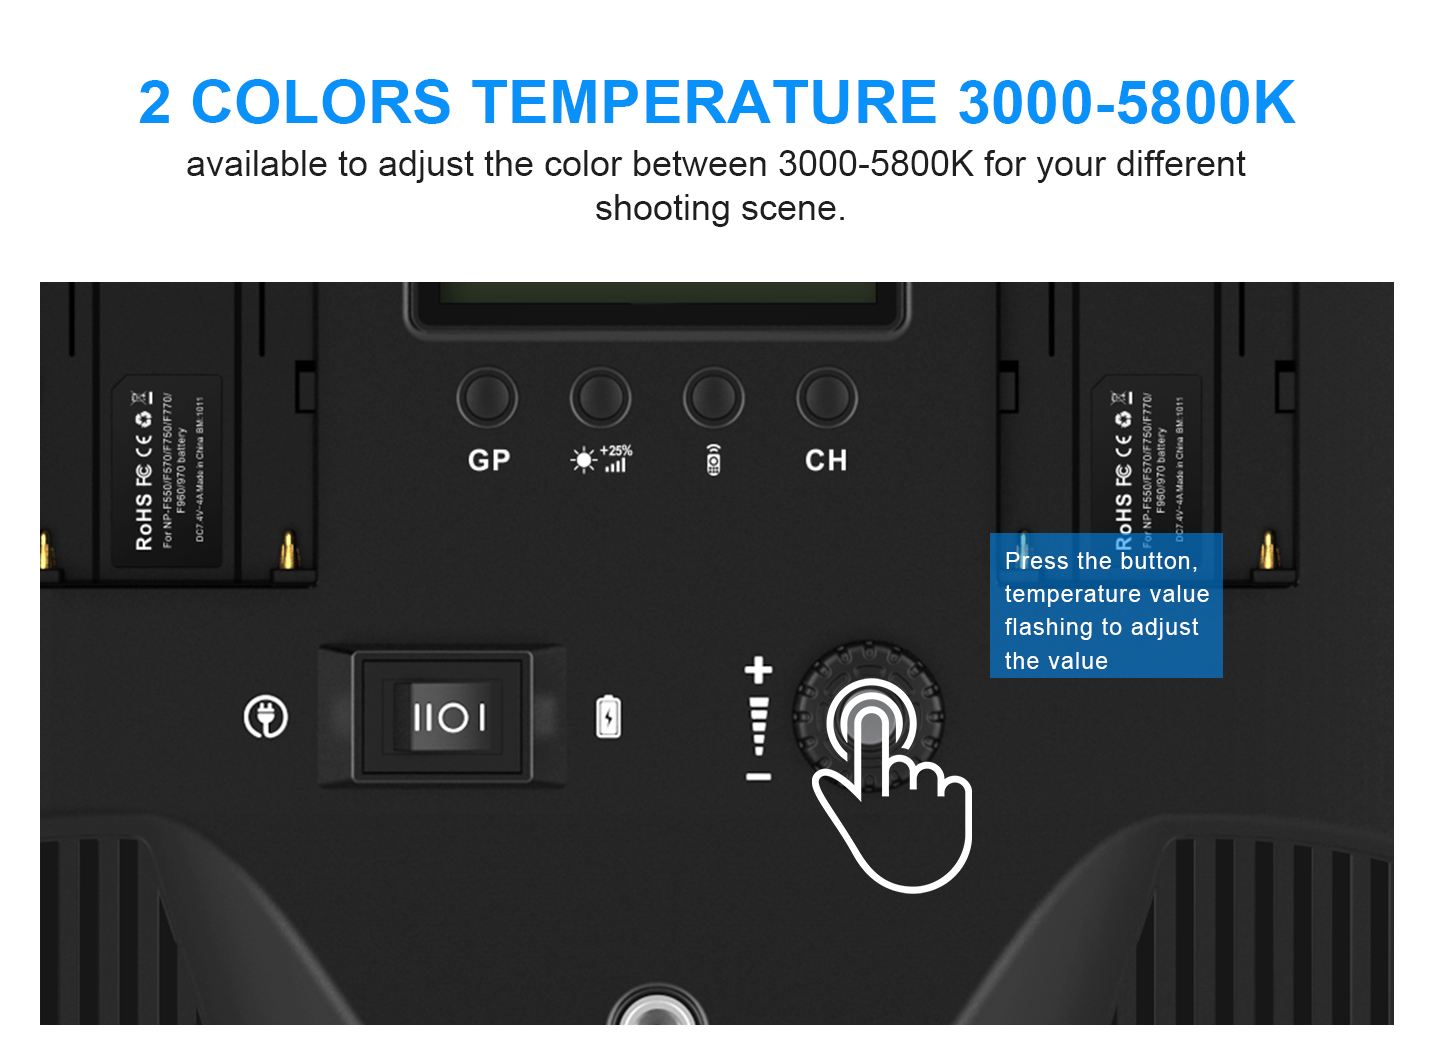 2 COLORS TEMPERATURE 3000-5800K